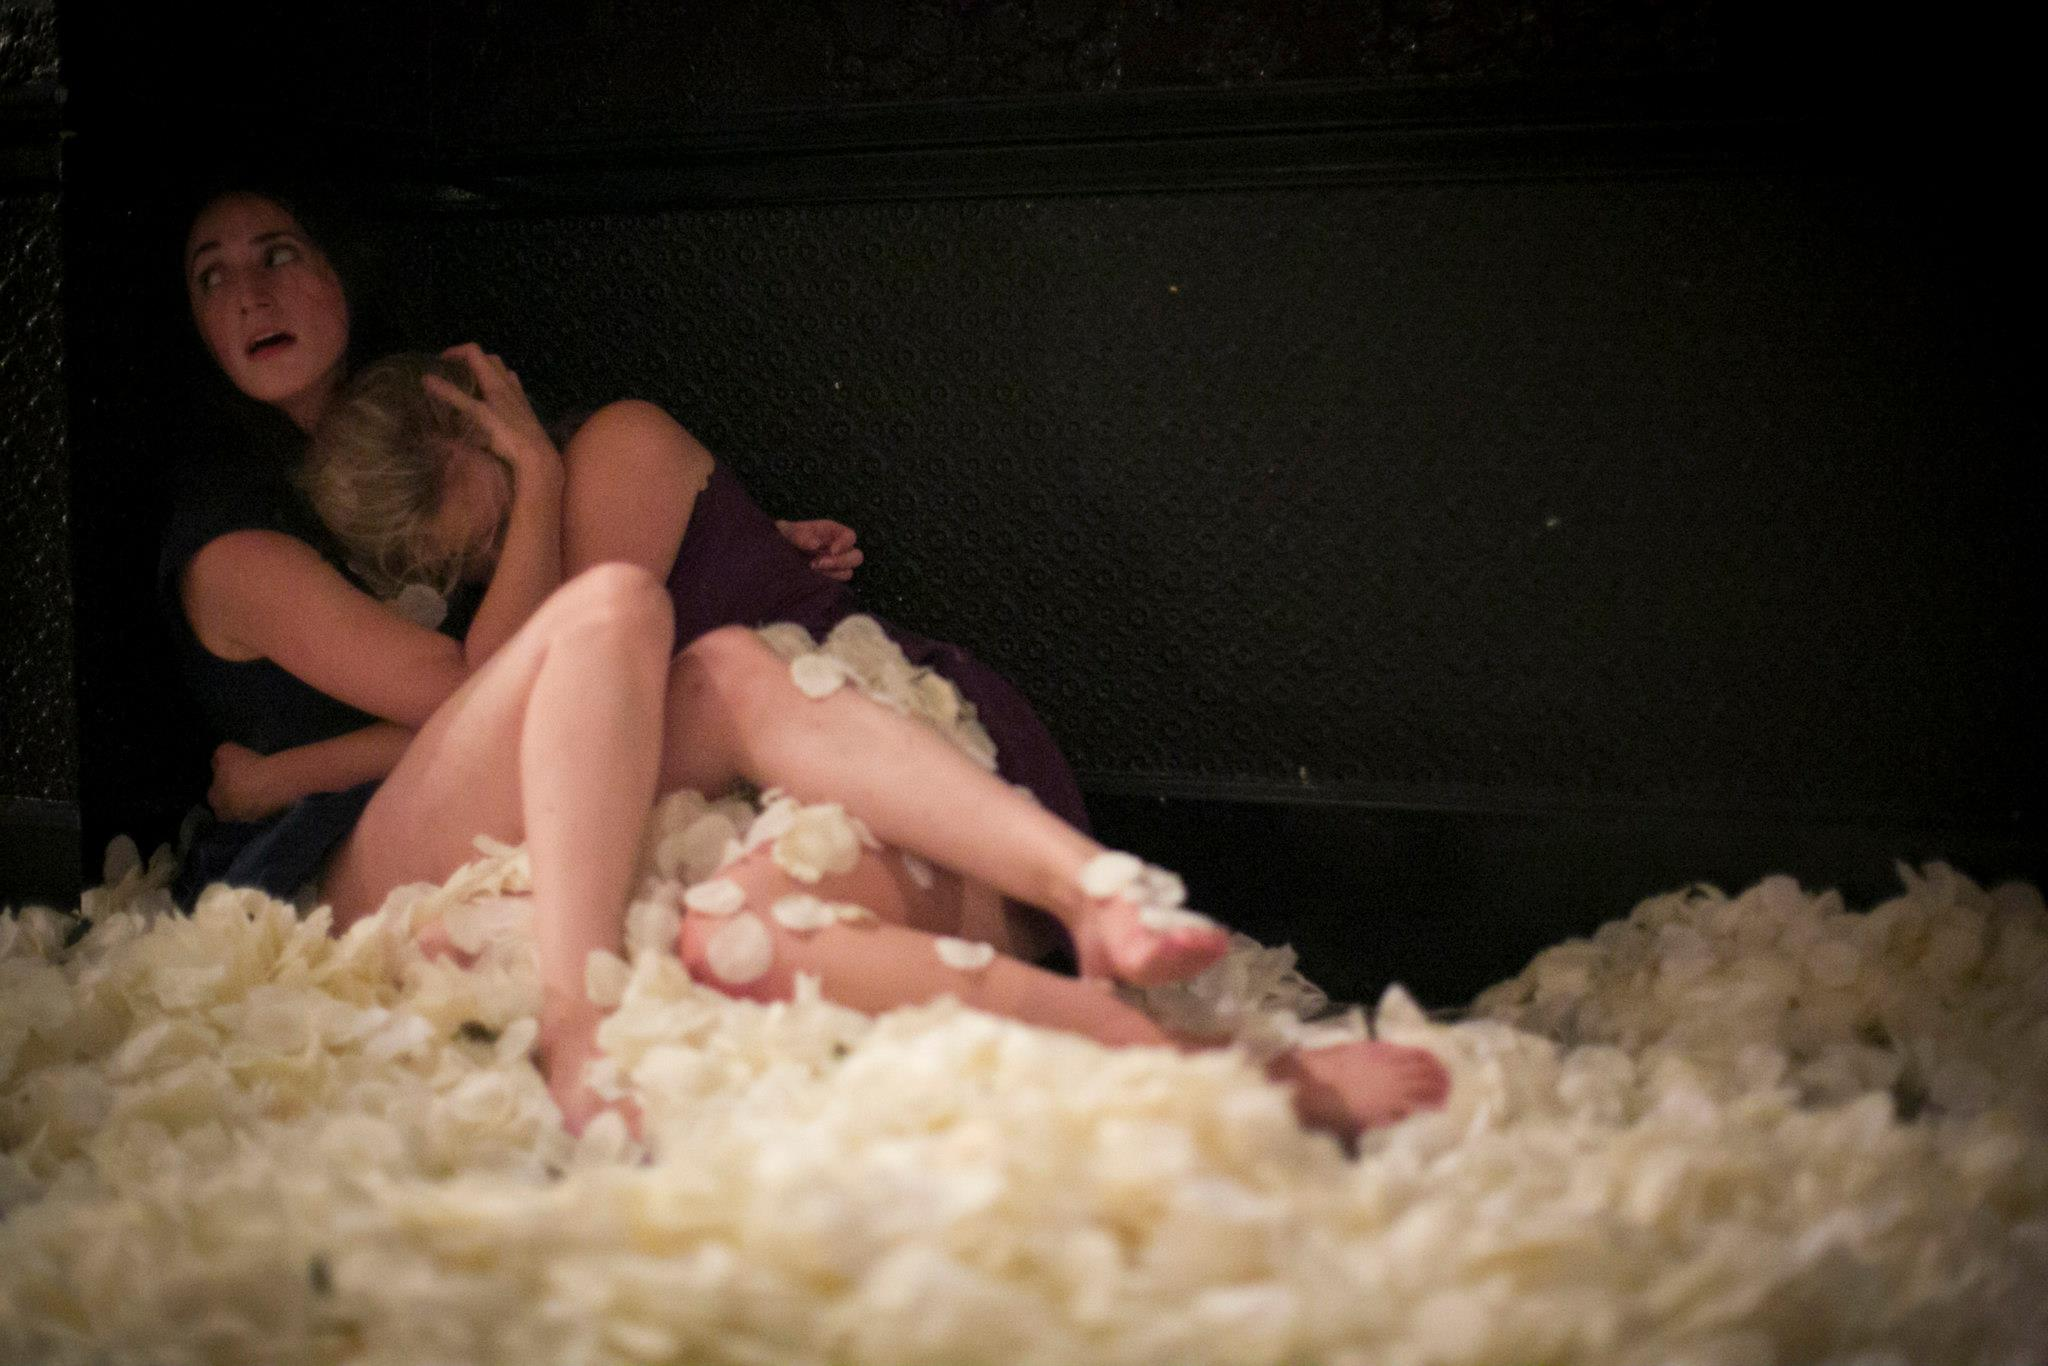 Danielle Russo and Lauren Muraski in  That one should open like an eyelid and lying there beneath it simply eyelids  at the Ace Hotel. Photograph by Whitney Browne, 2012.